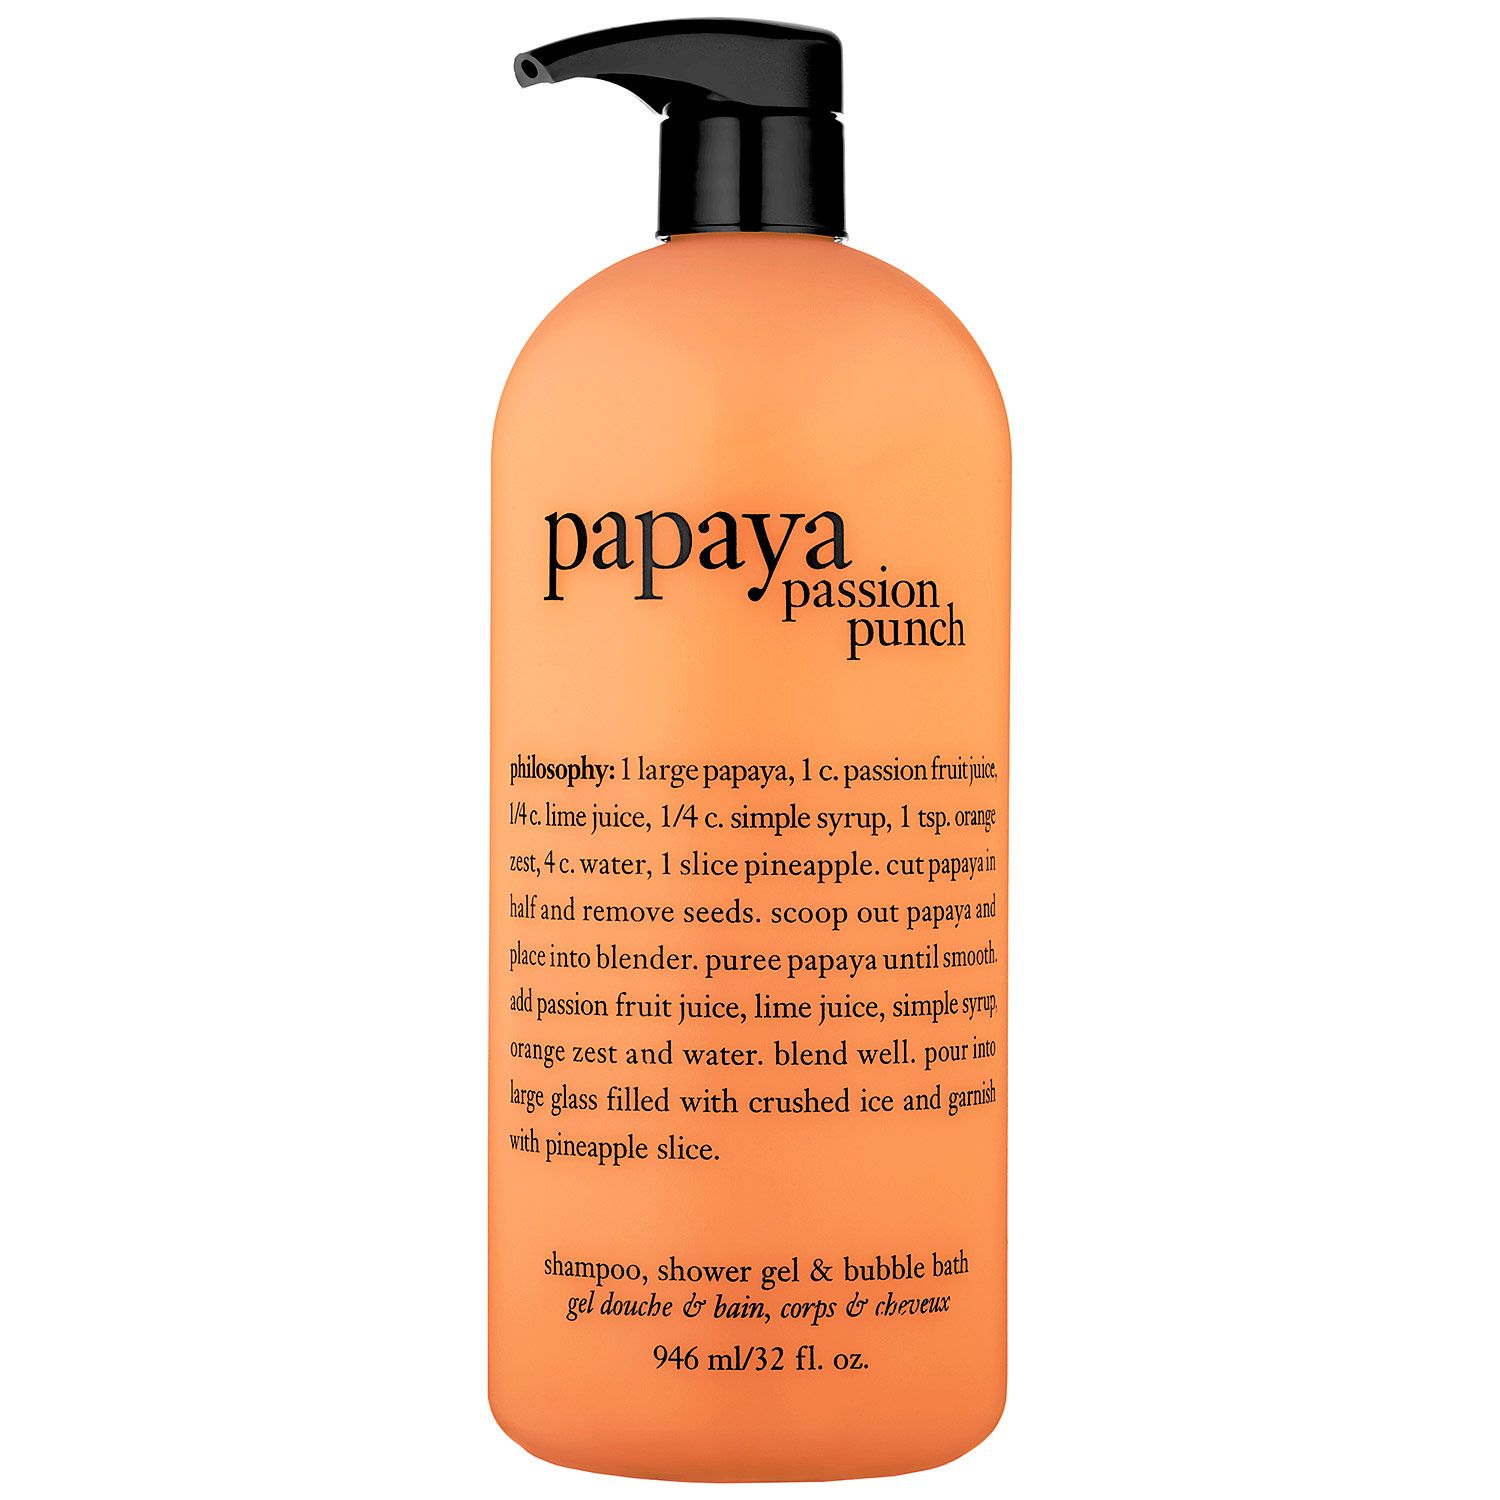 Philosophy Papaya Passion Punch Shampoo Shower Gel u Bubble Bath